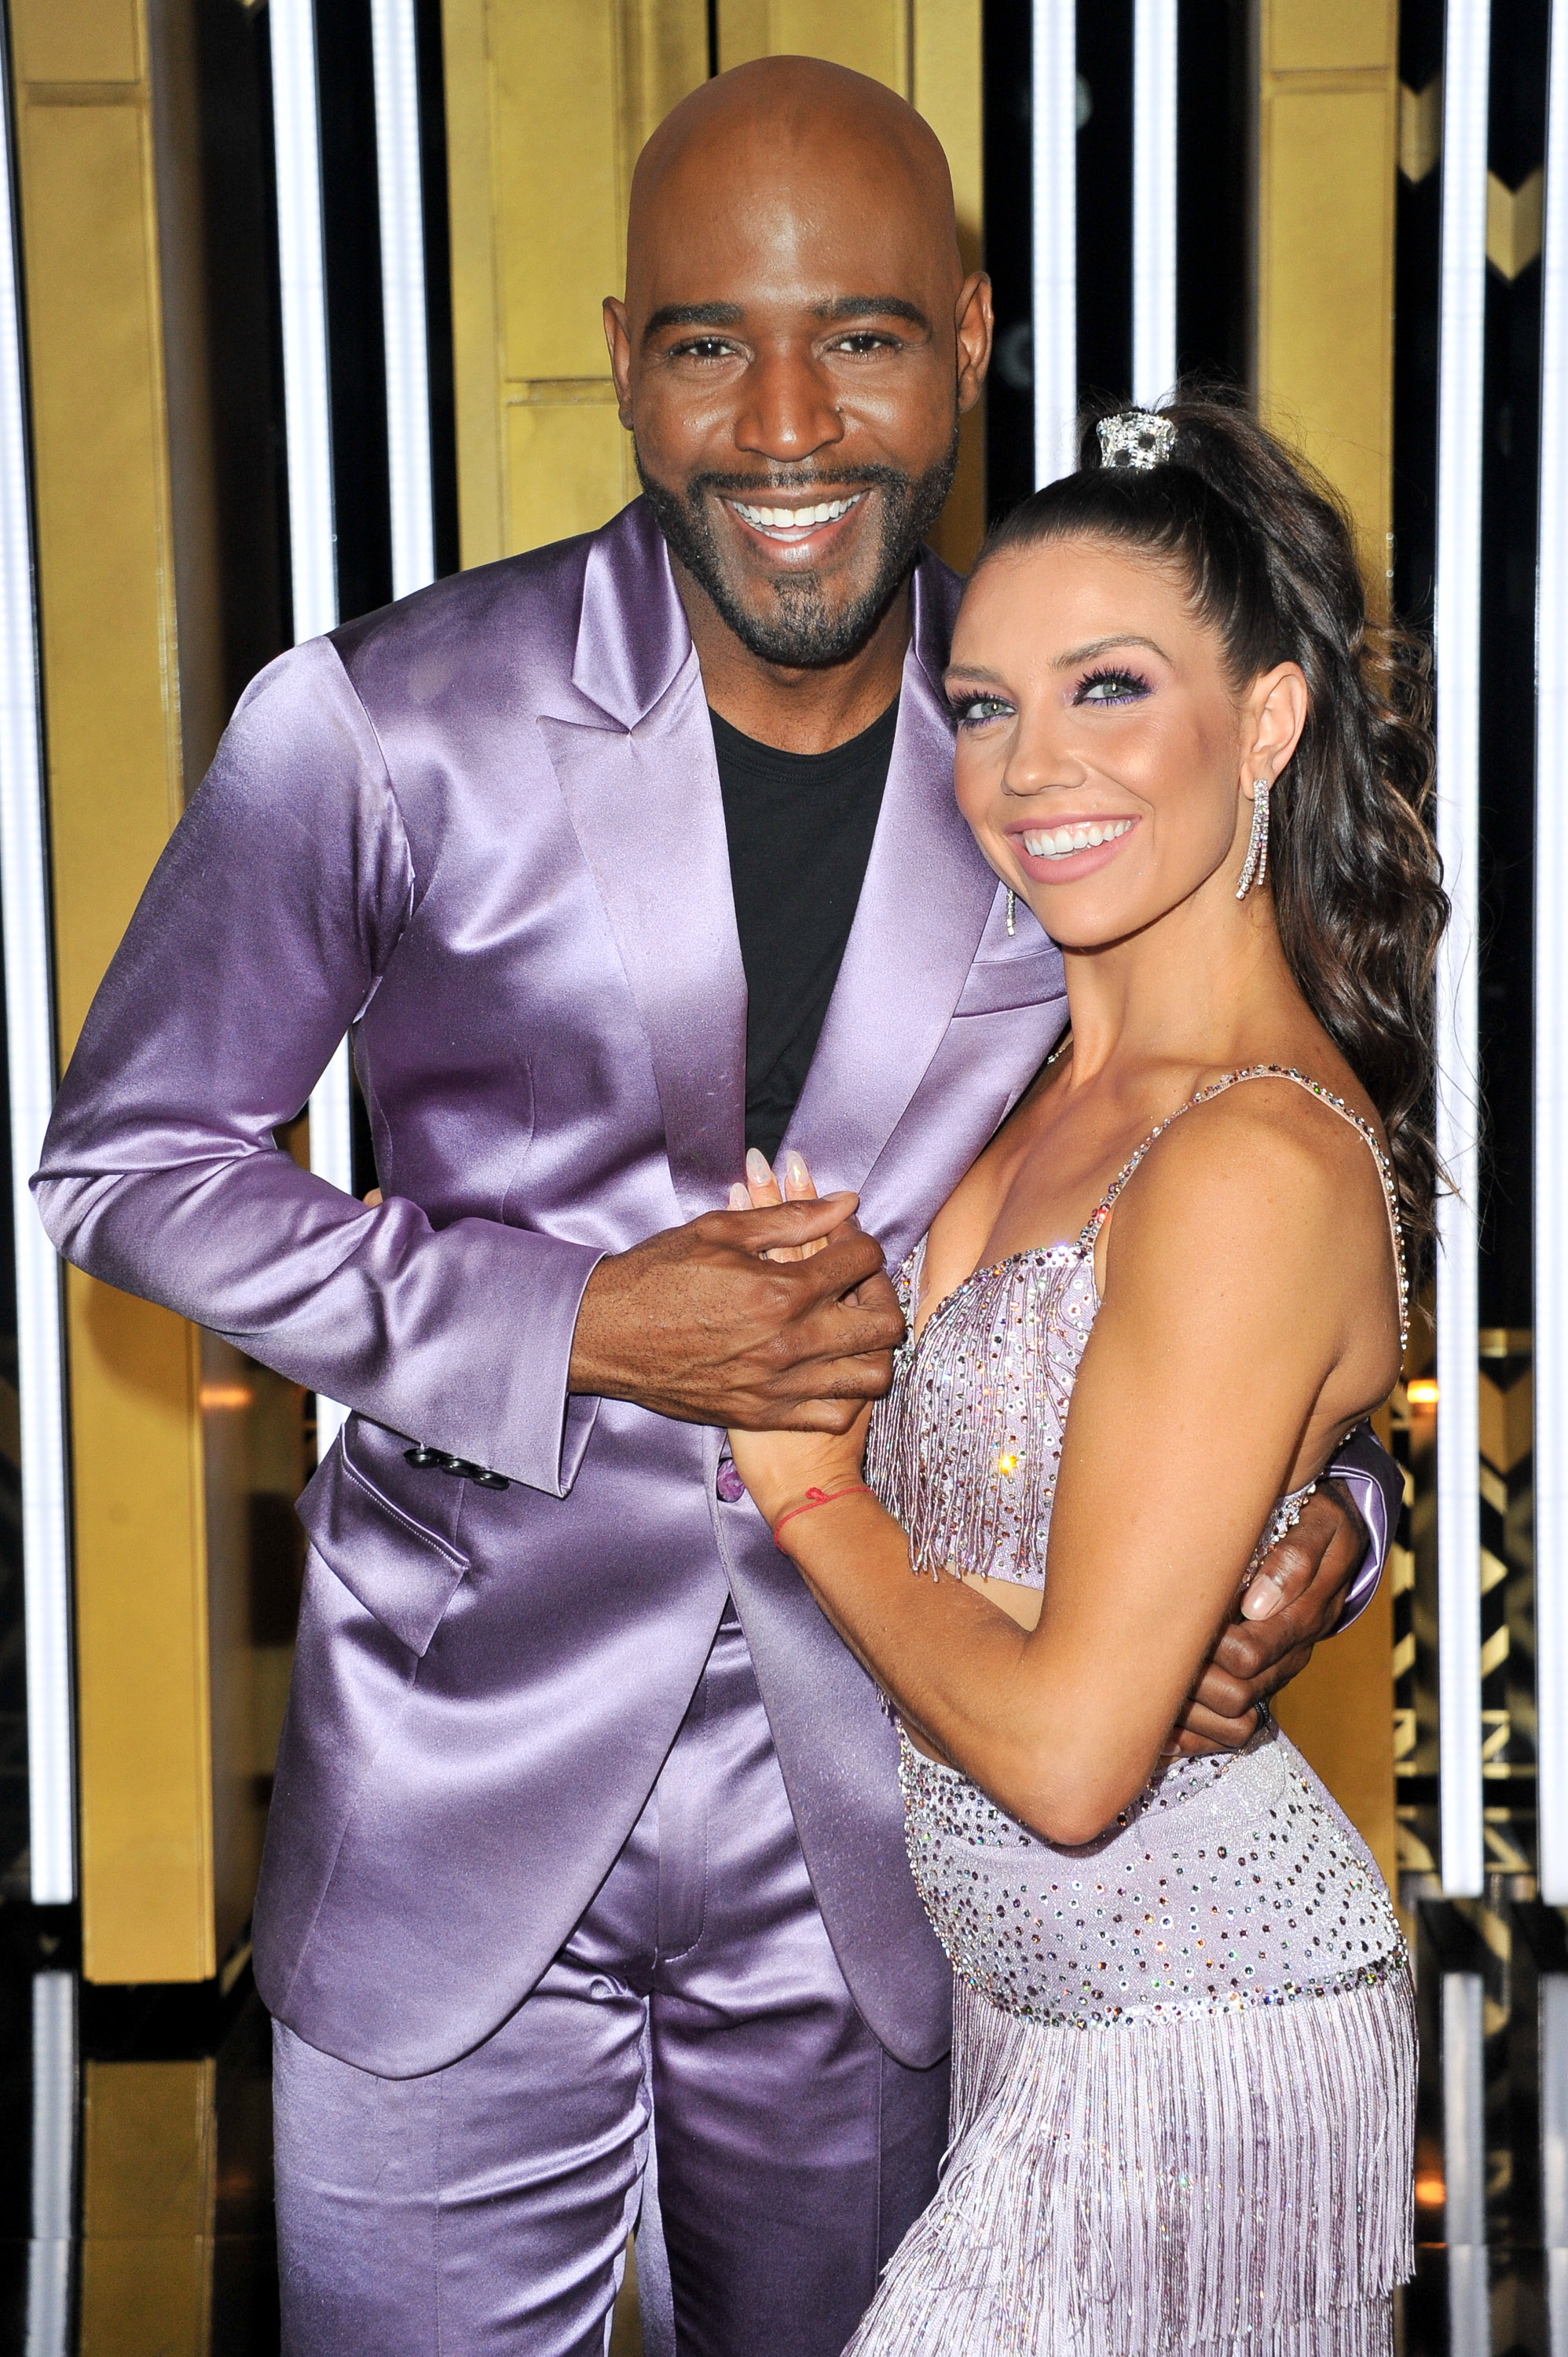 Karamo Brown and dancer Jenna Johnson compte on  Dancing With The Stars  on Sept. 16, 2019 in Los Angeles, California.